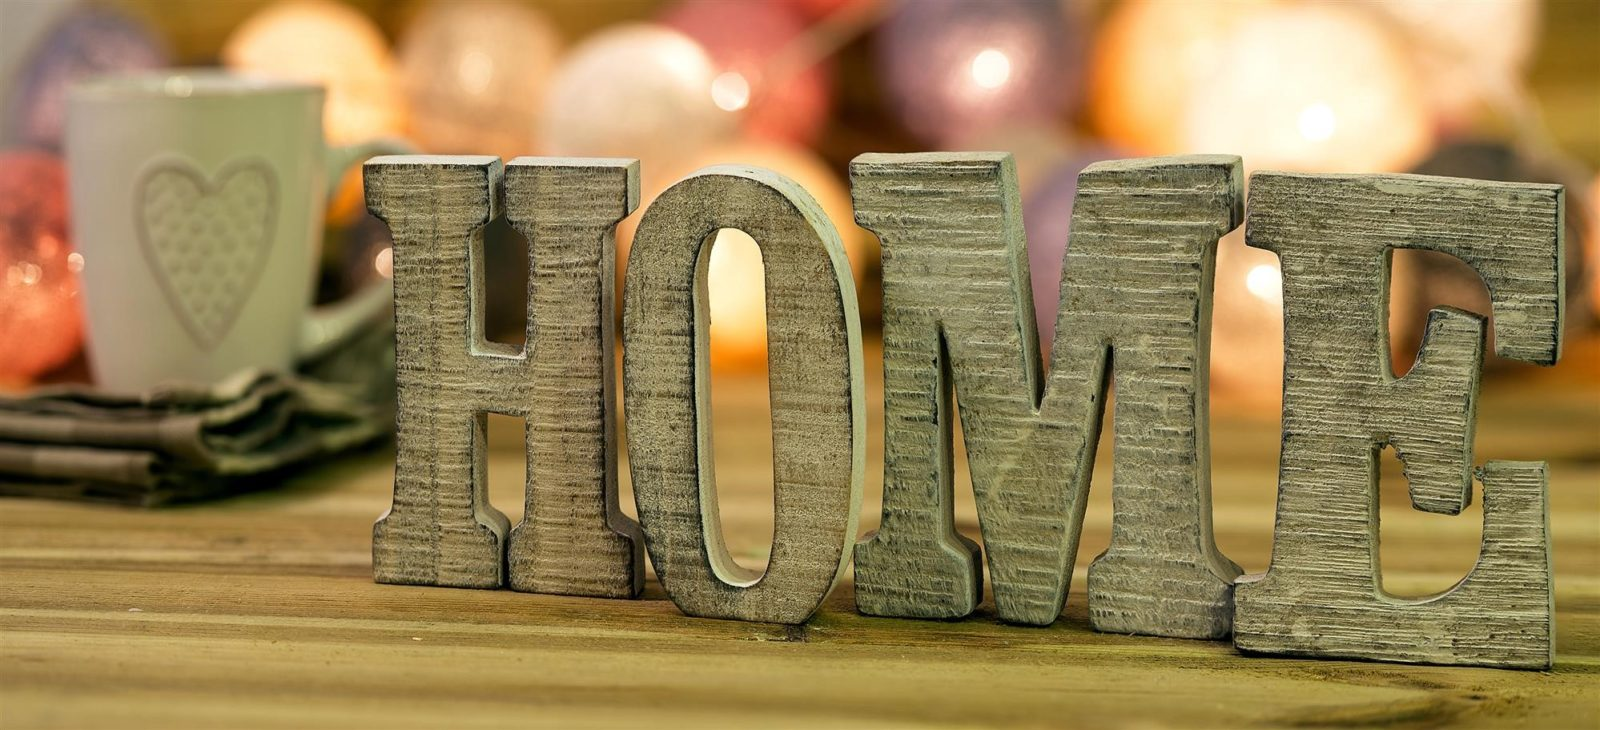 5 tips for getting your home ready for fall phoenix homes for Getting ready for fall